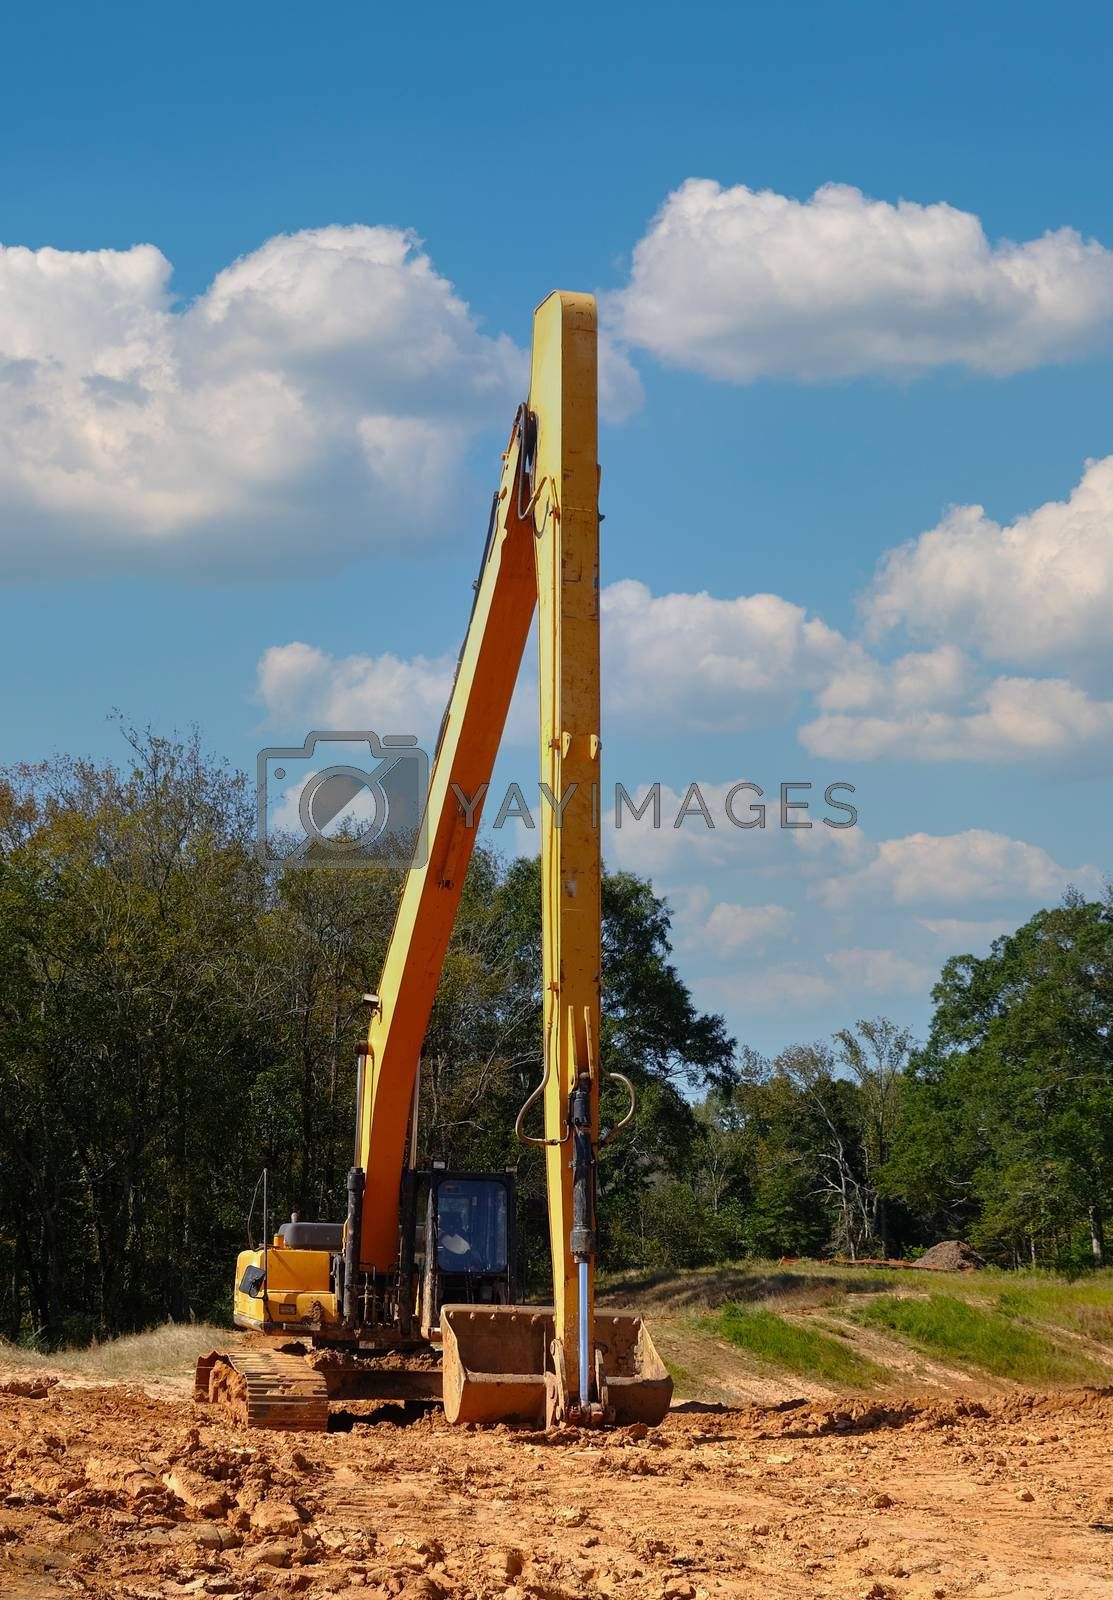 Tall Loader on Graded Construction Site in a Residential Development